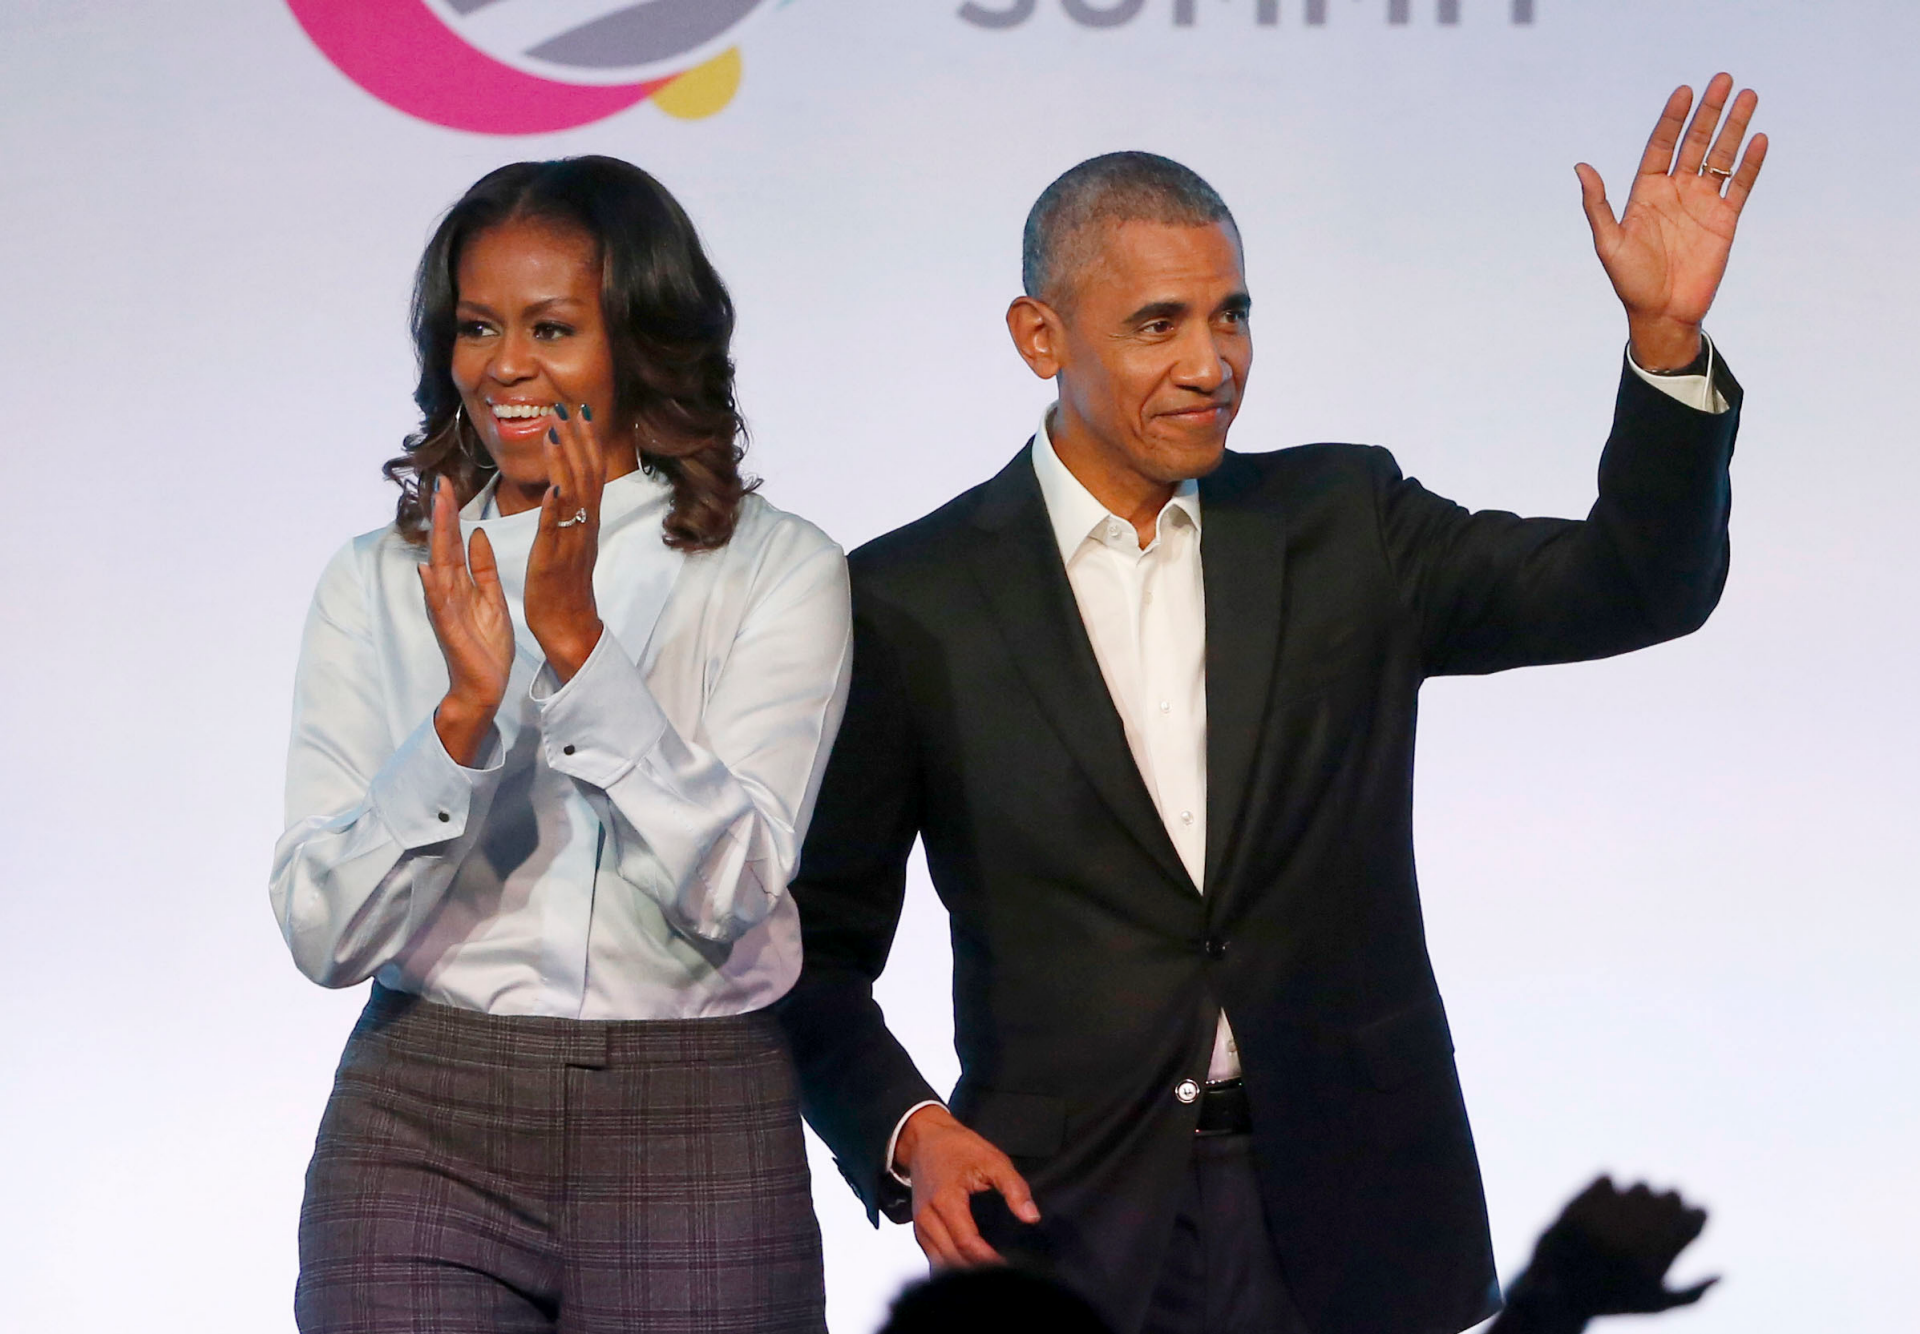 Obamas placed an offer on 'mega-expensive' estate in Martha's Vineyard: report